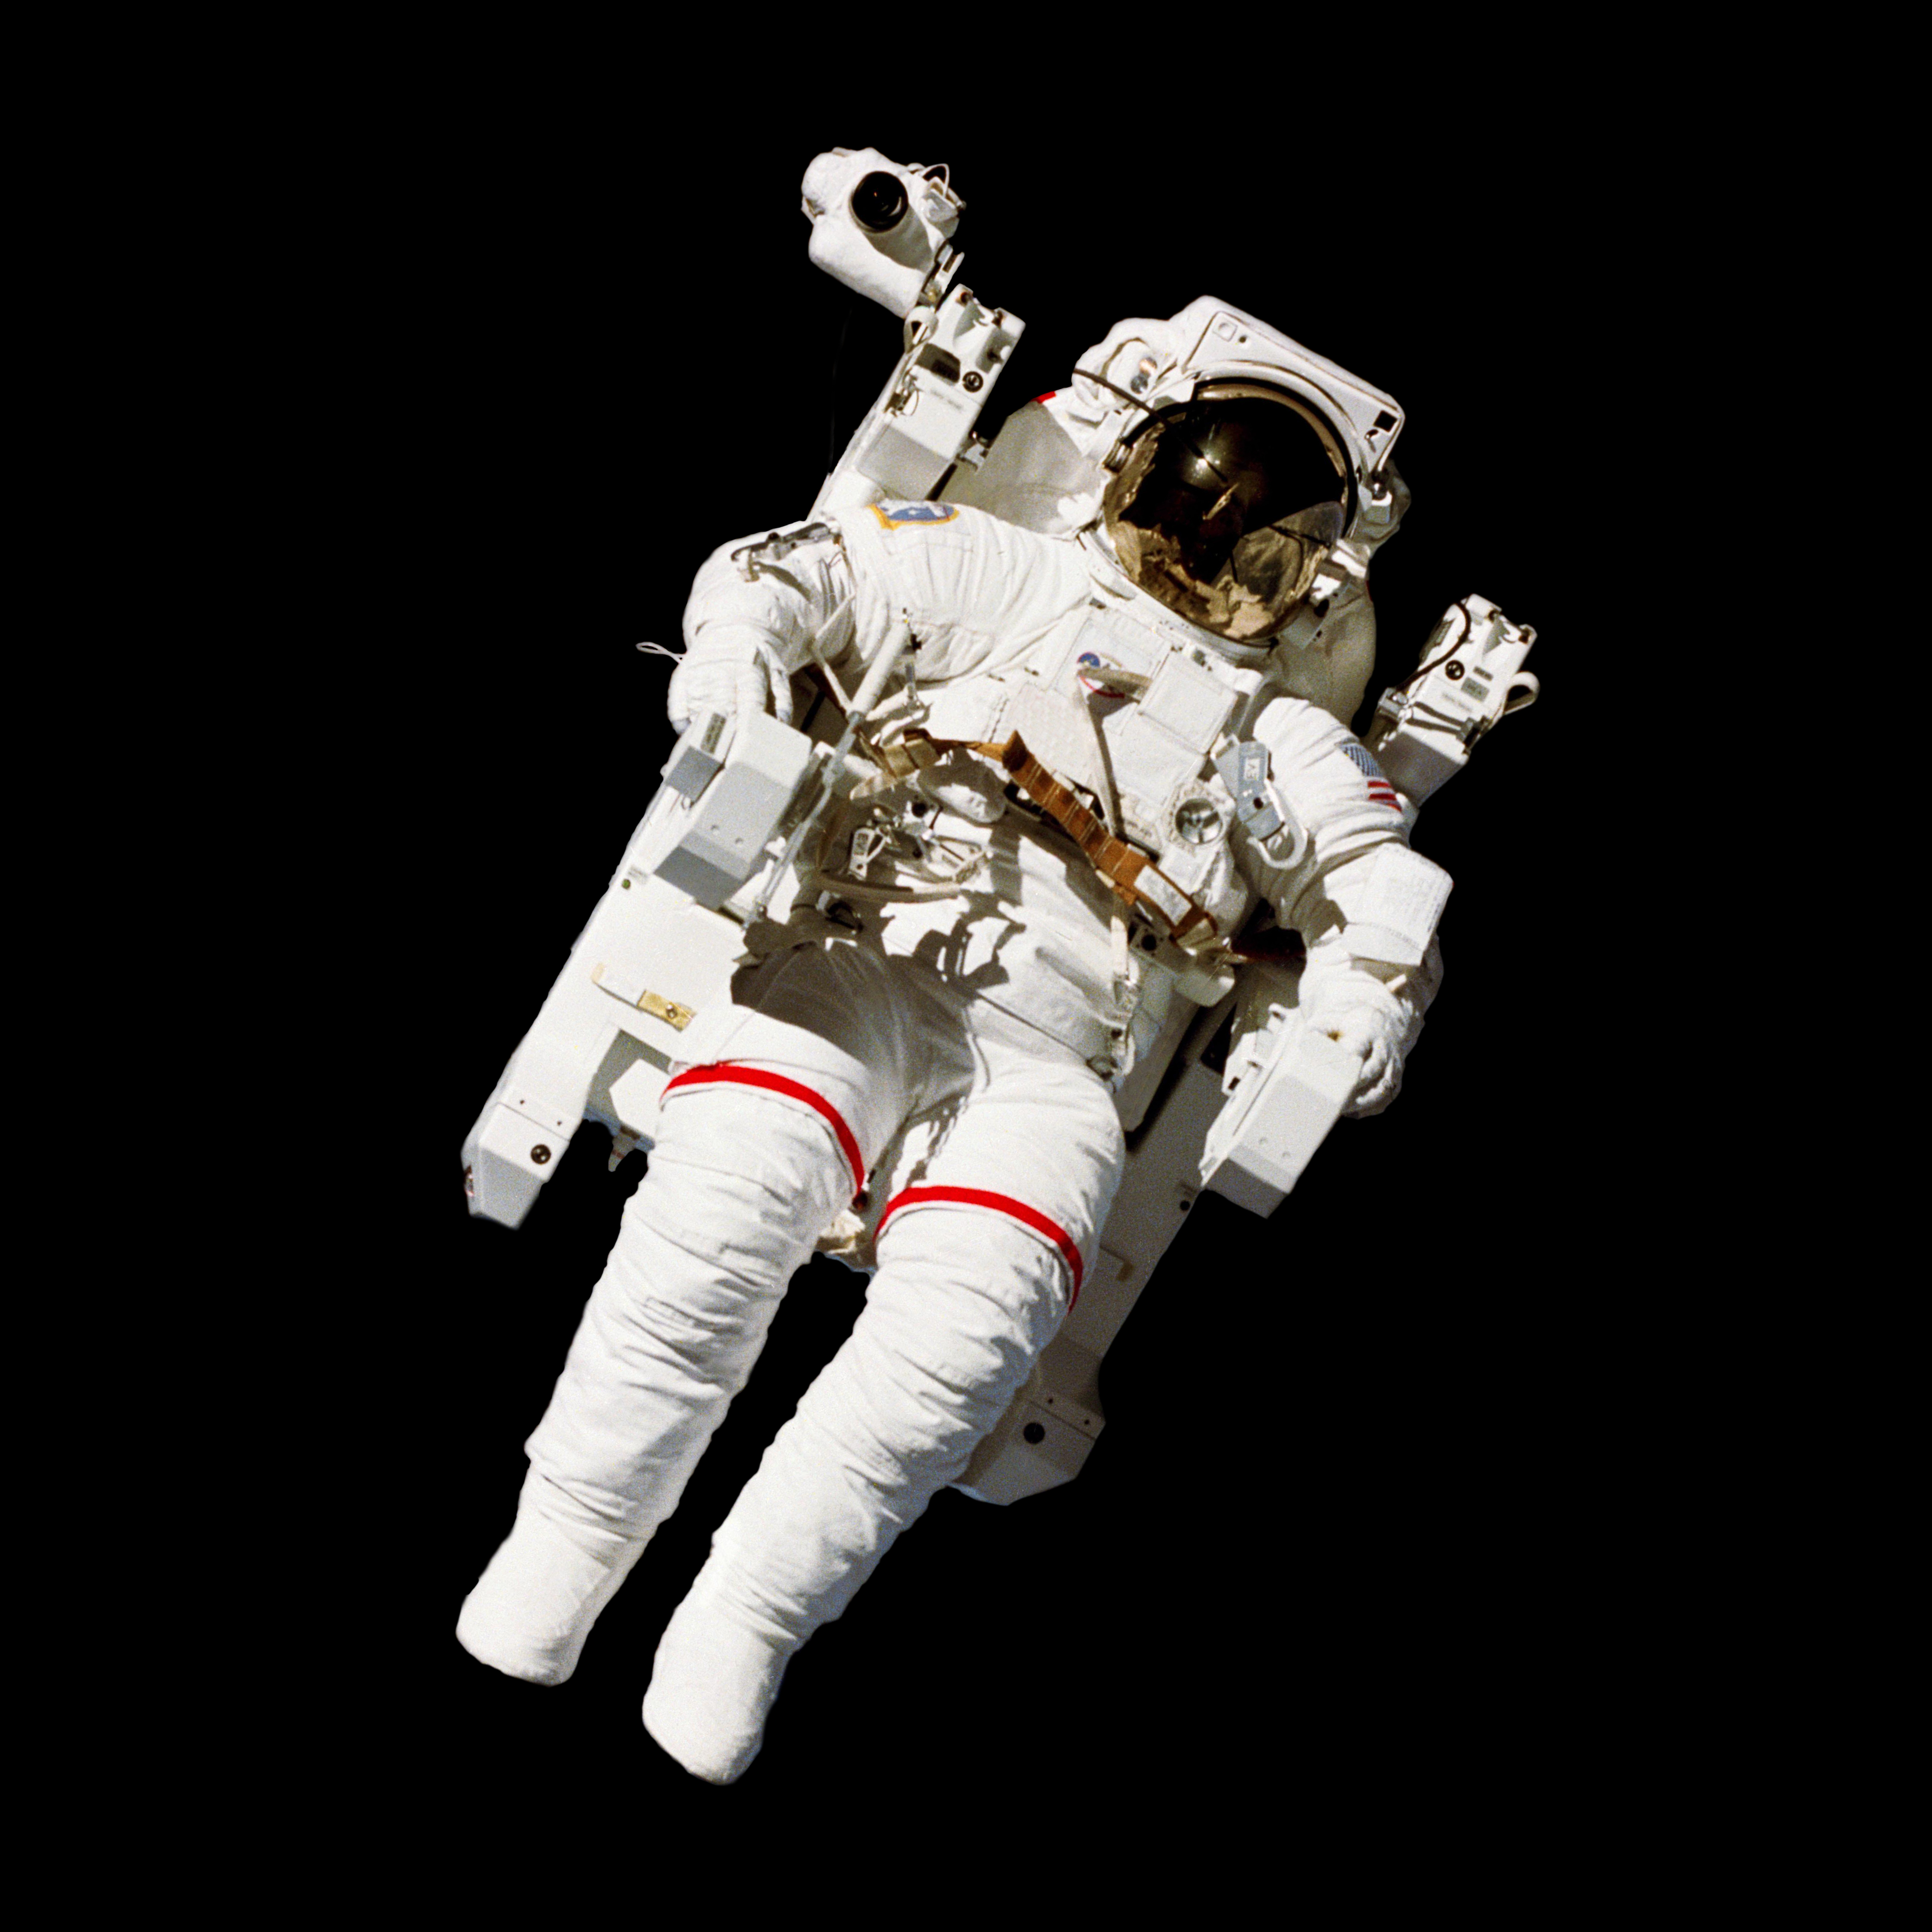 What happens to Astronauts' vision when they are in space? - Katzen ...